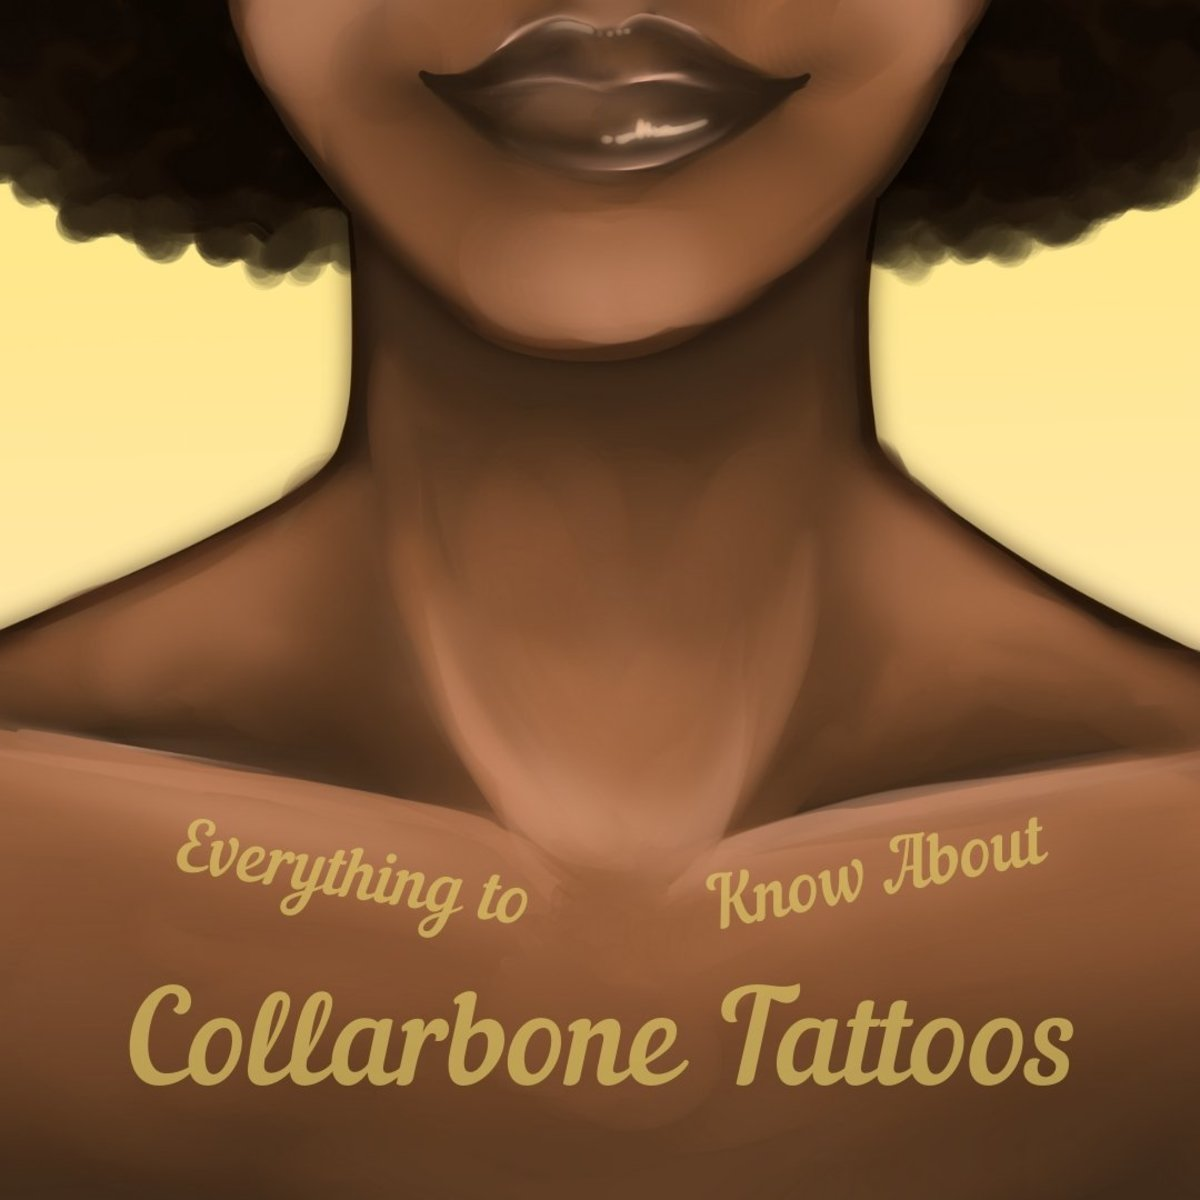 What You Need to Know About Collarbone Tattoos